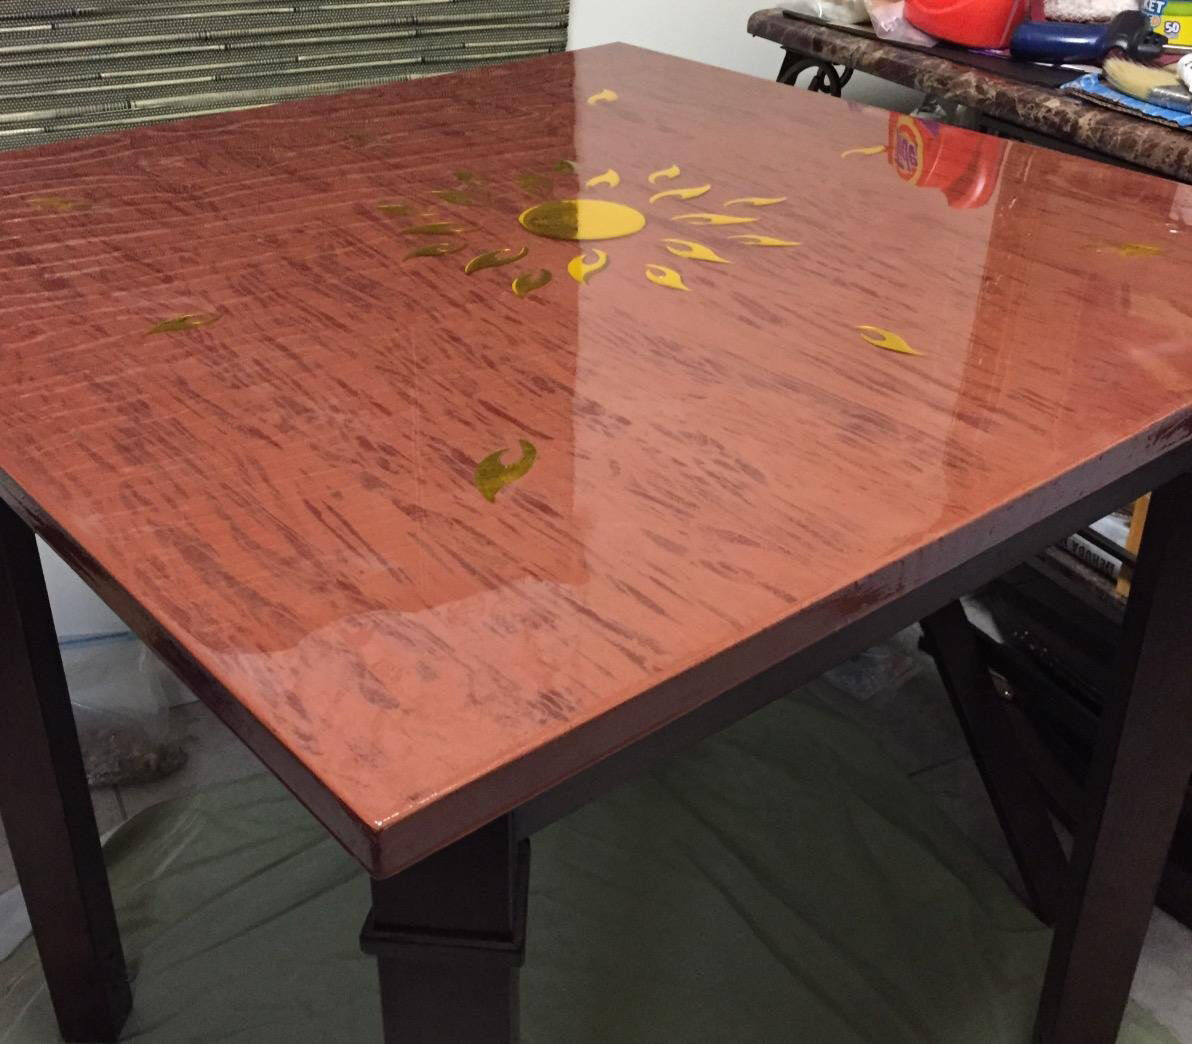 Crystal Clear Bar Table Top Epoxy Resin Coating Wood For Tabletop - 64 Oz Kit